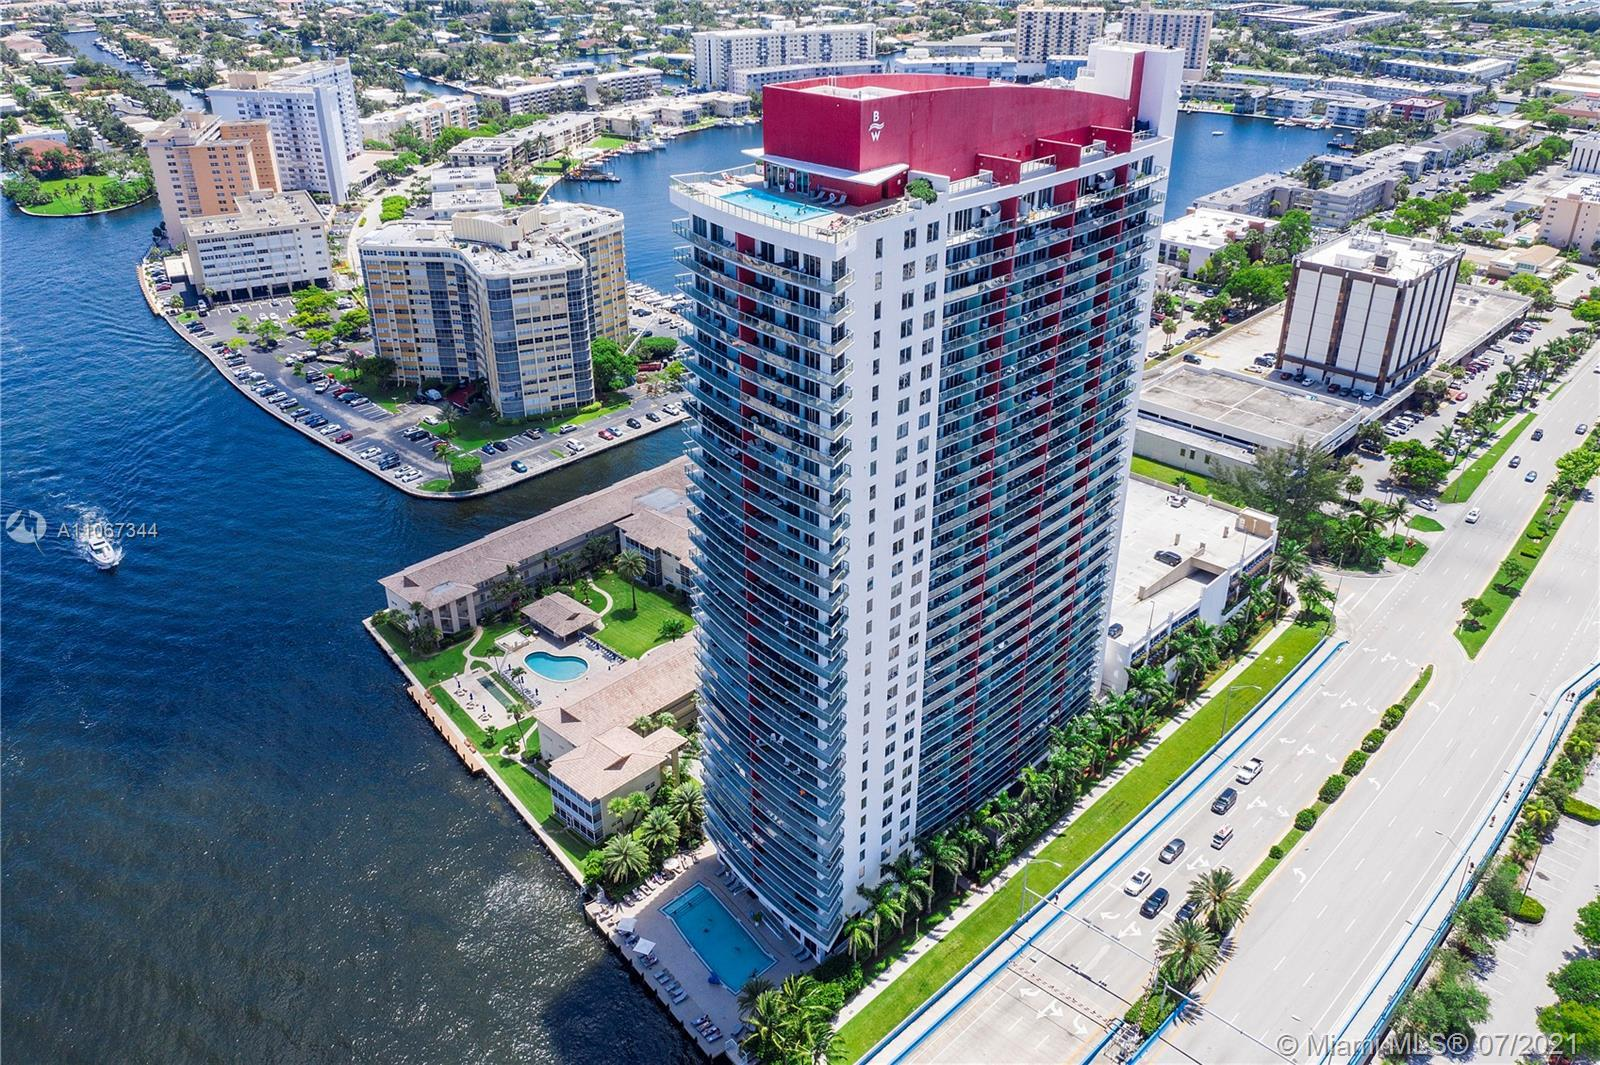 WOW! Fully Furnished Double (2-Bed, 2-Bath) Unit Condo At The Beachwalk Resort In Hallandale Beach W